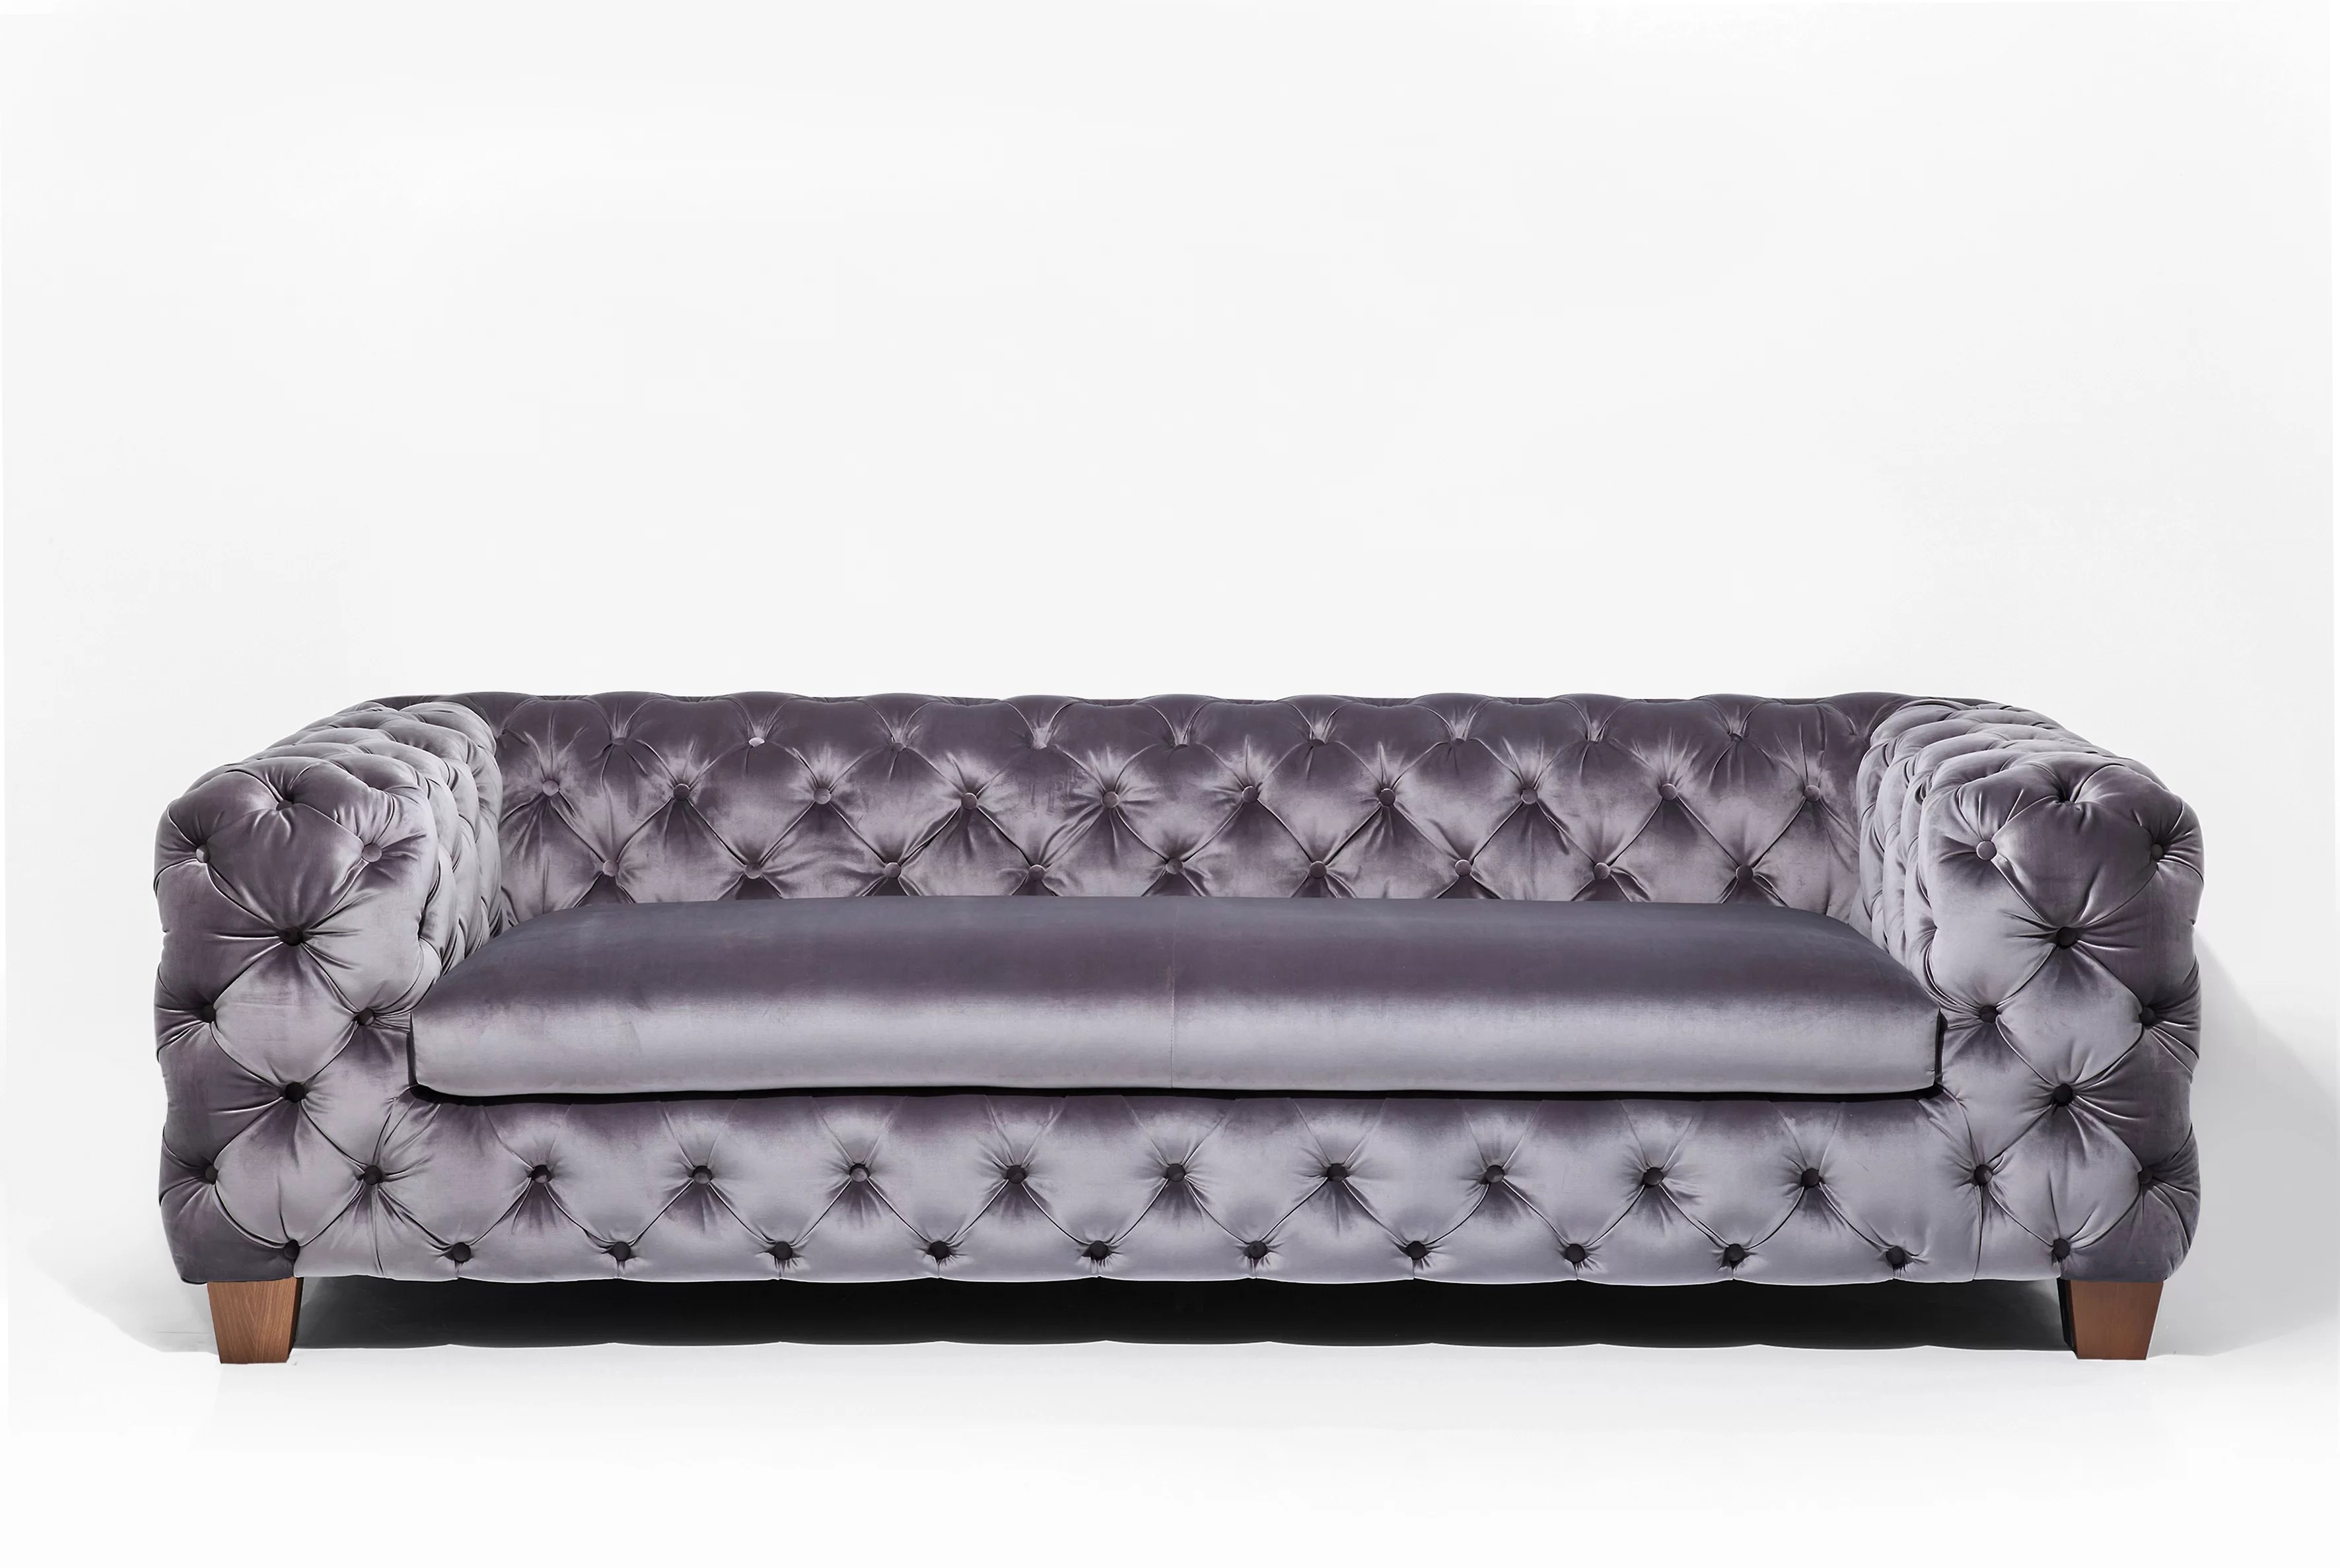 Kare Design Sofa My Desire Bewertungen Wayfair De